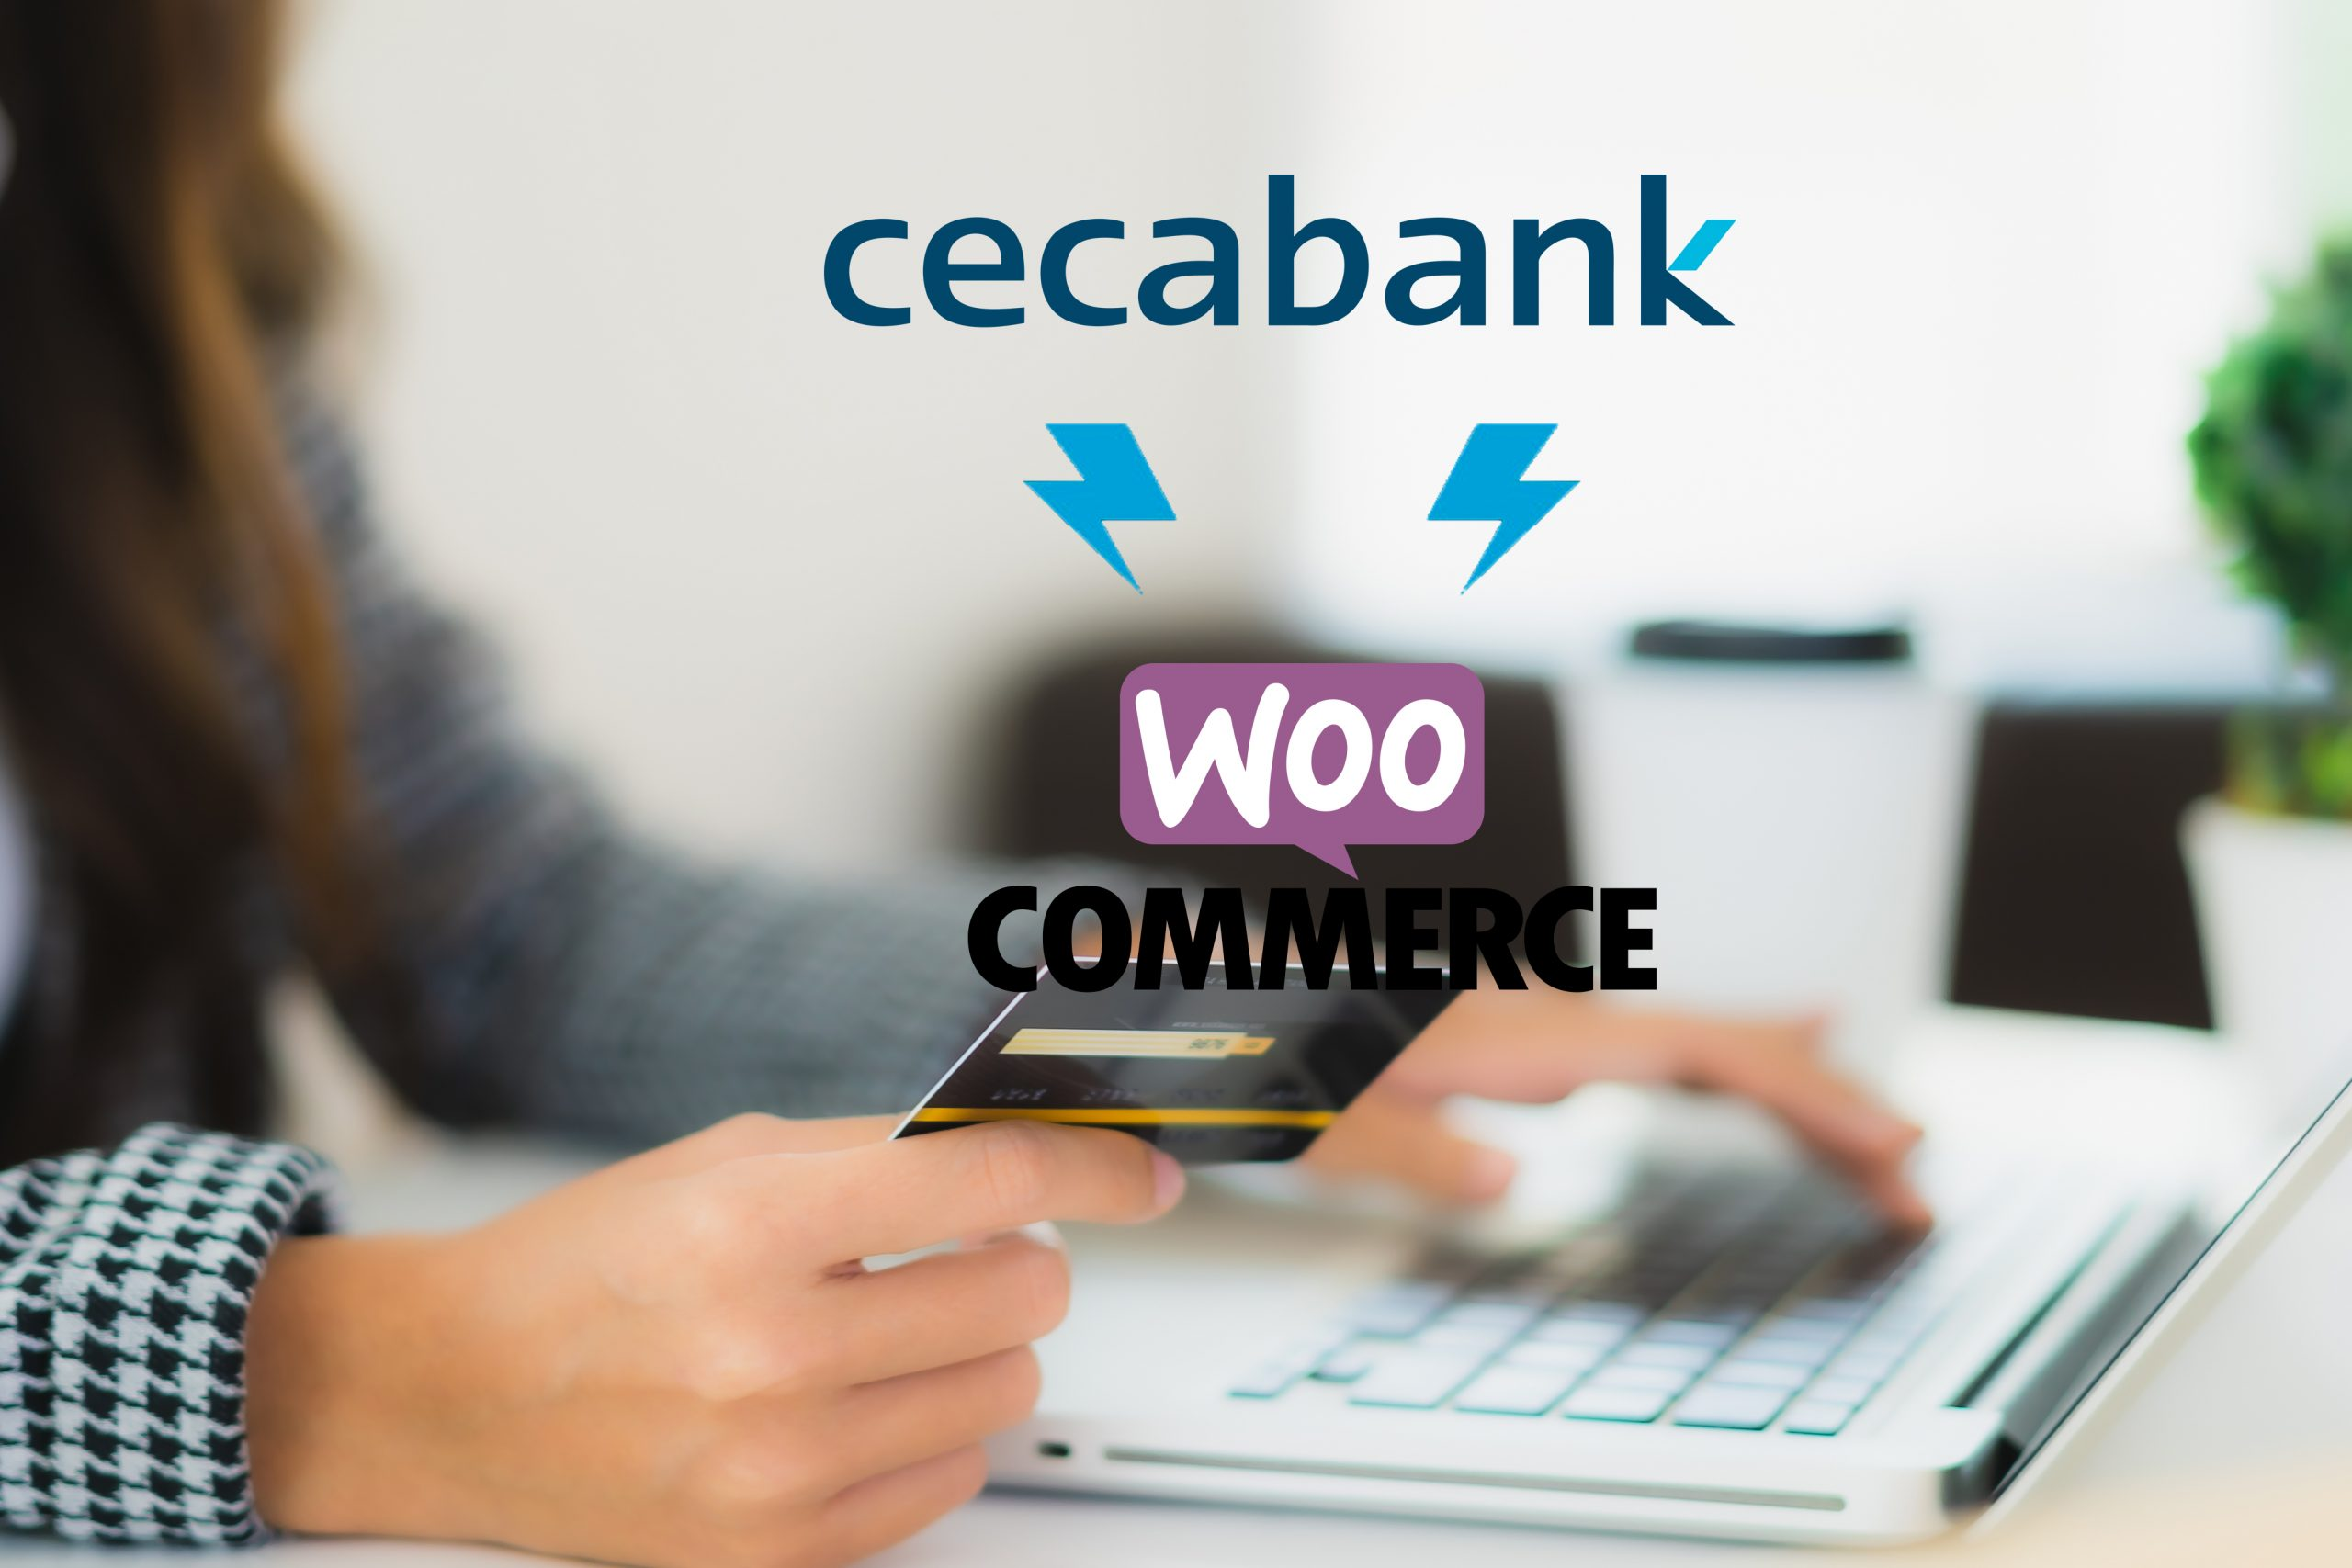 cecabank-woocommerce-tpv-virtual